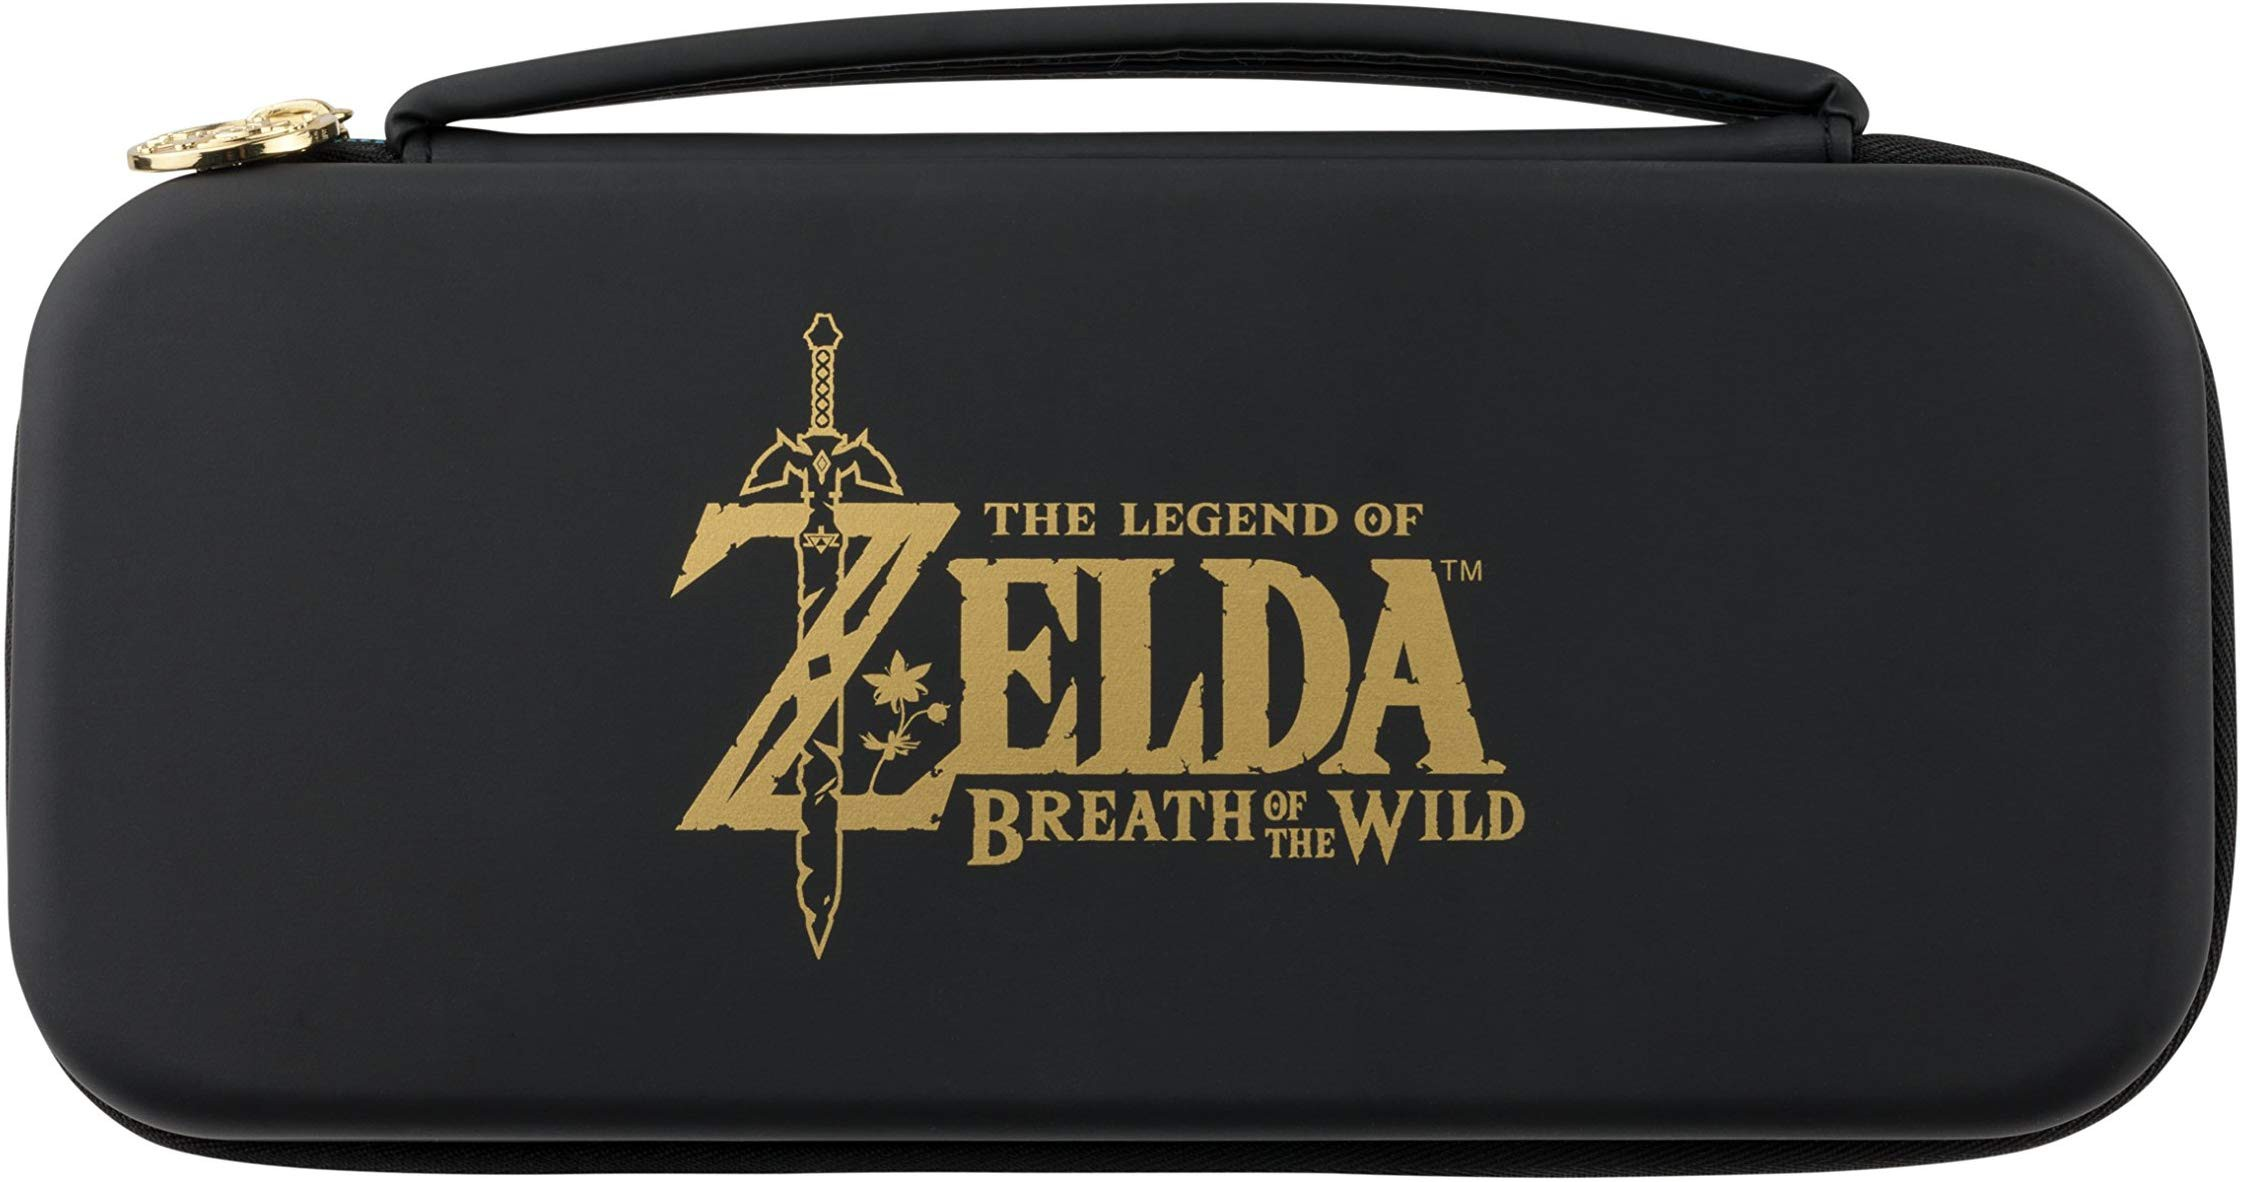 PDP Deluxe Console Case - Zelda Guardian Edition For Nintendo Switch